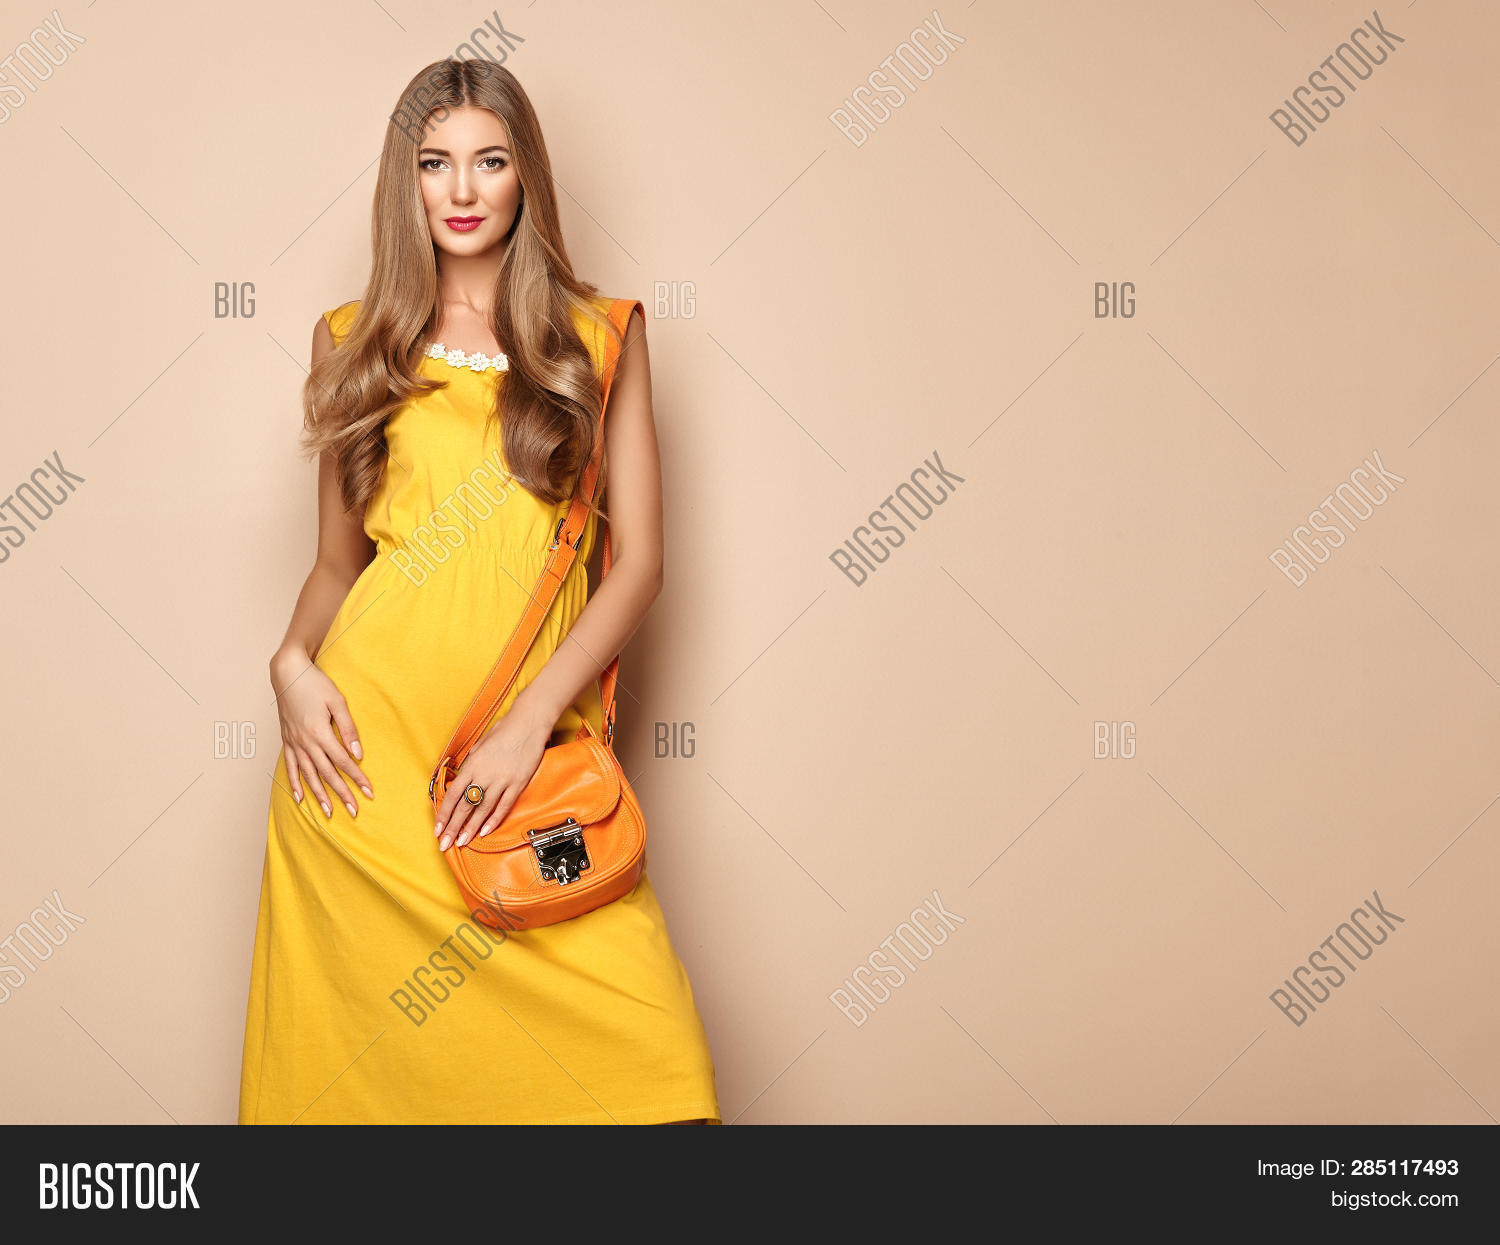 accessories,advertising,attractive,background,beautiful,beauty,beige,blonde,clothing,clutch,color,dress,fashion,fashionable,female,figure,girl,glamour,grace,hair,hairstyle,handbag,happy,isolated,lady,lifestyle,luxurious,makeup,manicure,model,orange,outfit,pink,portrait,posing,shopping,smile,spring,studio,stylish,summer,text,urban,vintage,vogue,woman,womanly,yellow,young